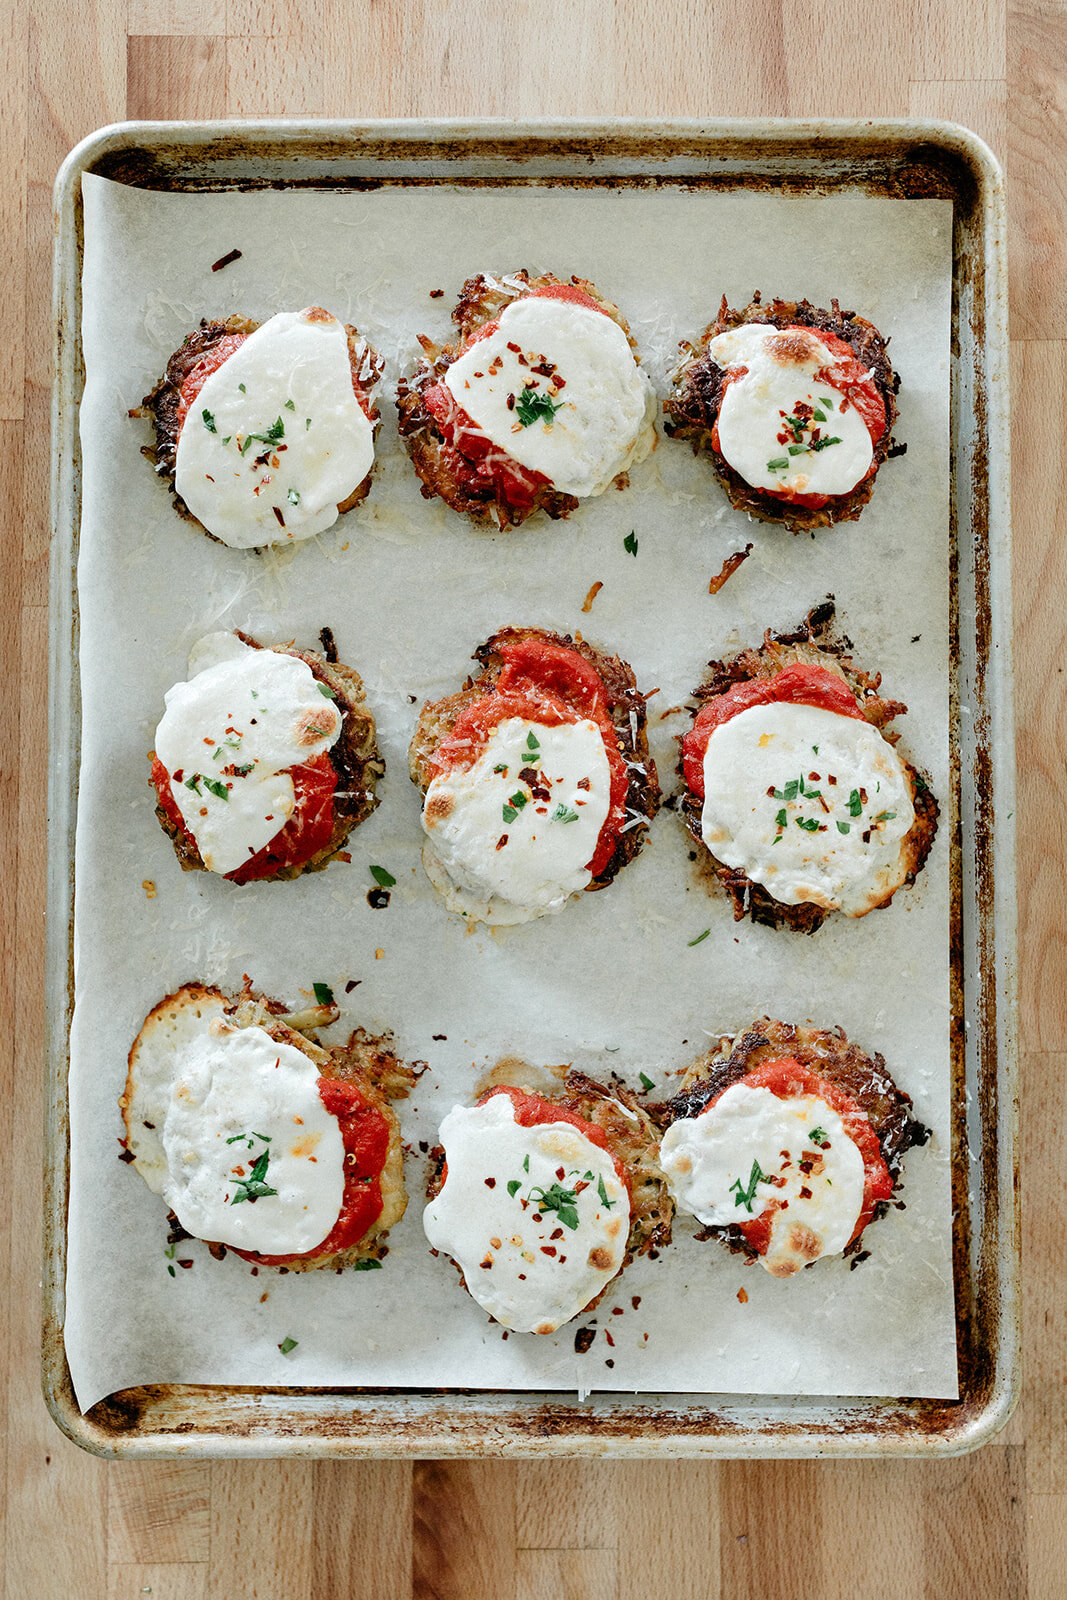 A baking sheet lined with latkes topped with tomato sauce and mozzarella cheese.